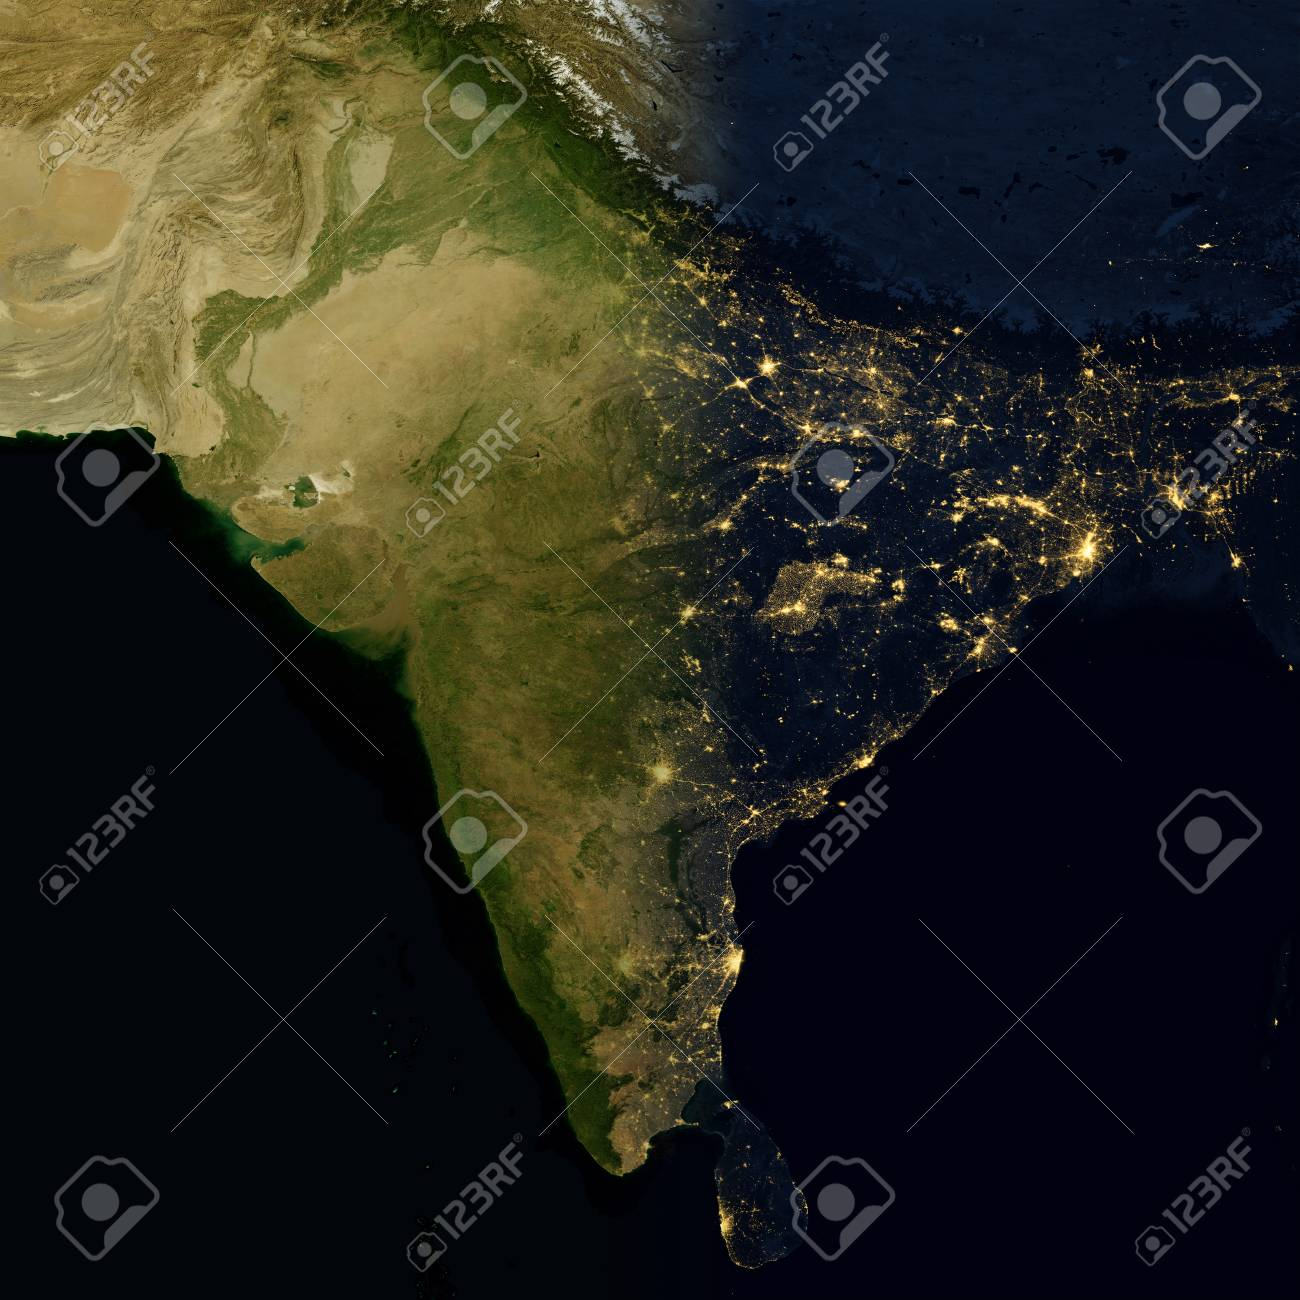 City Lights On World Map India Elements Of This Image Are